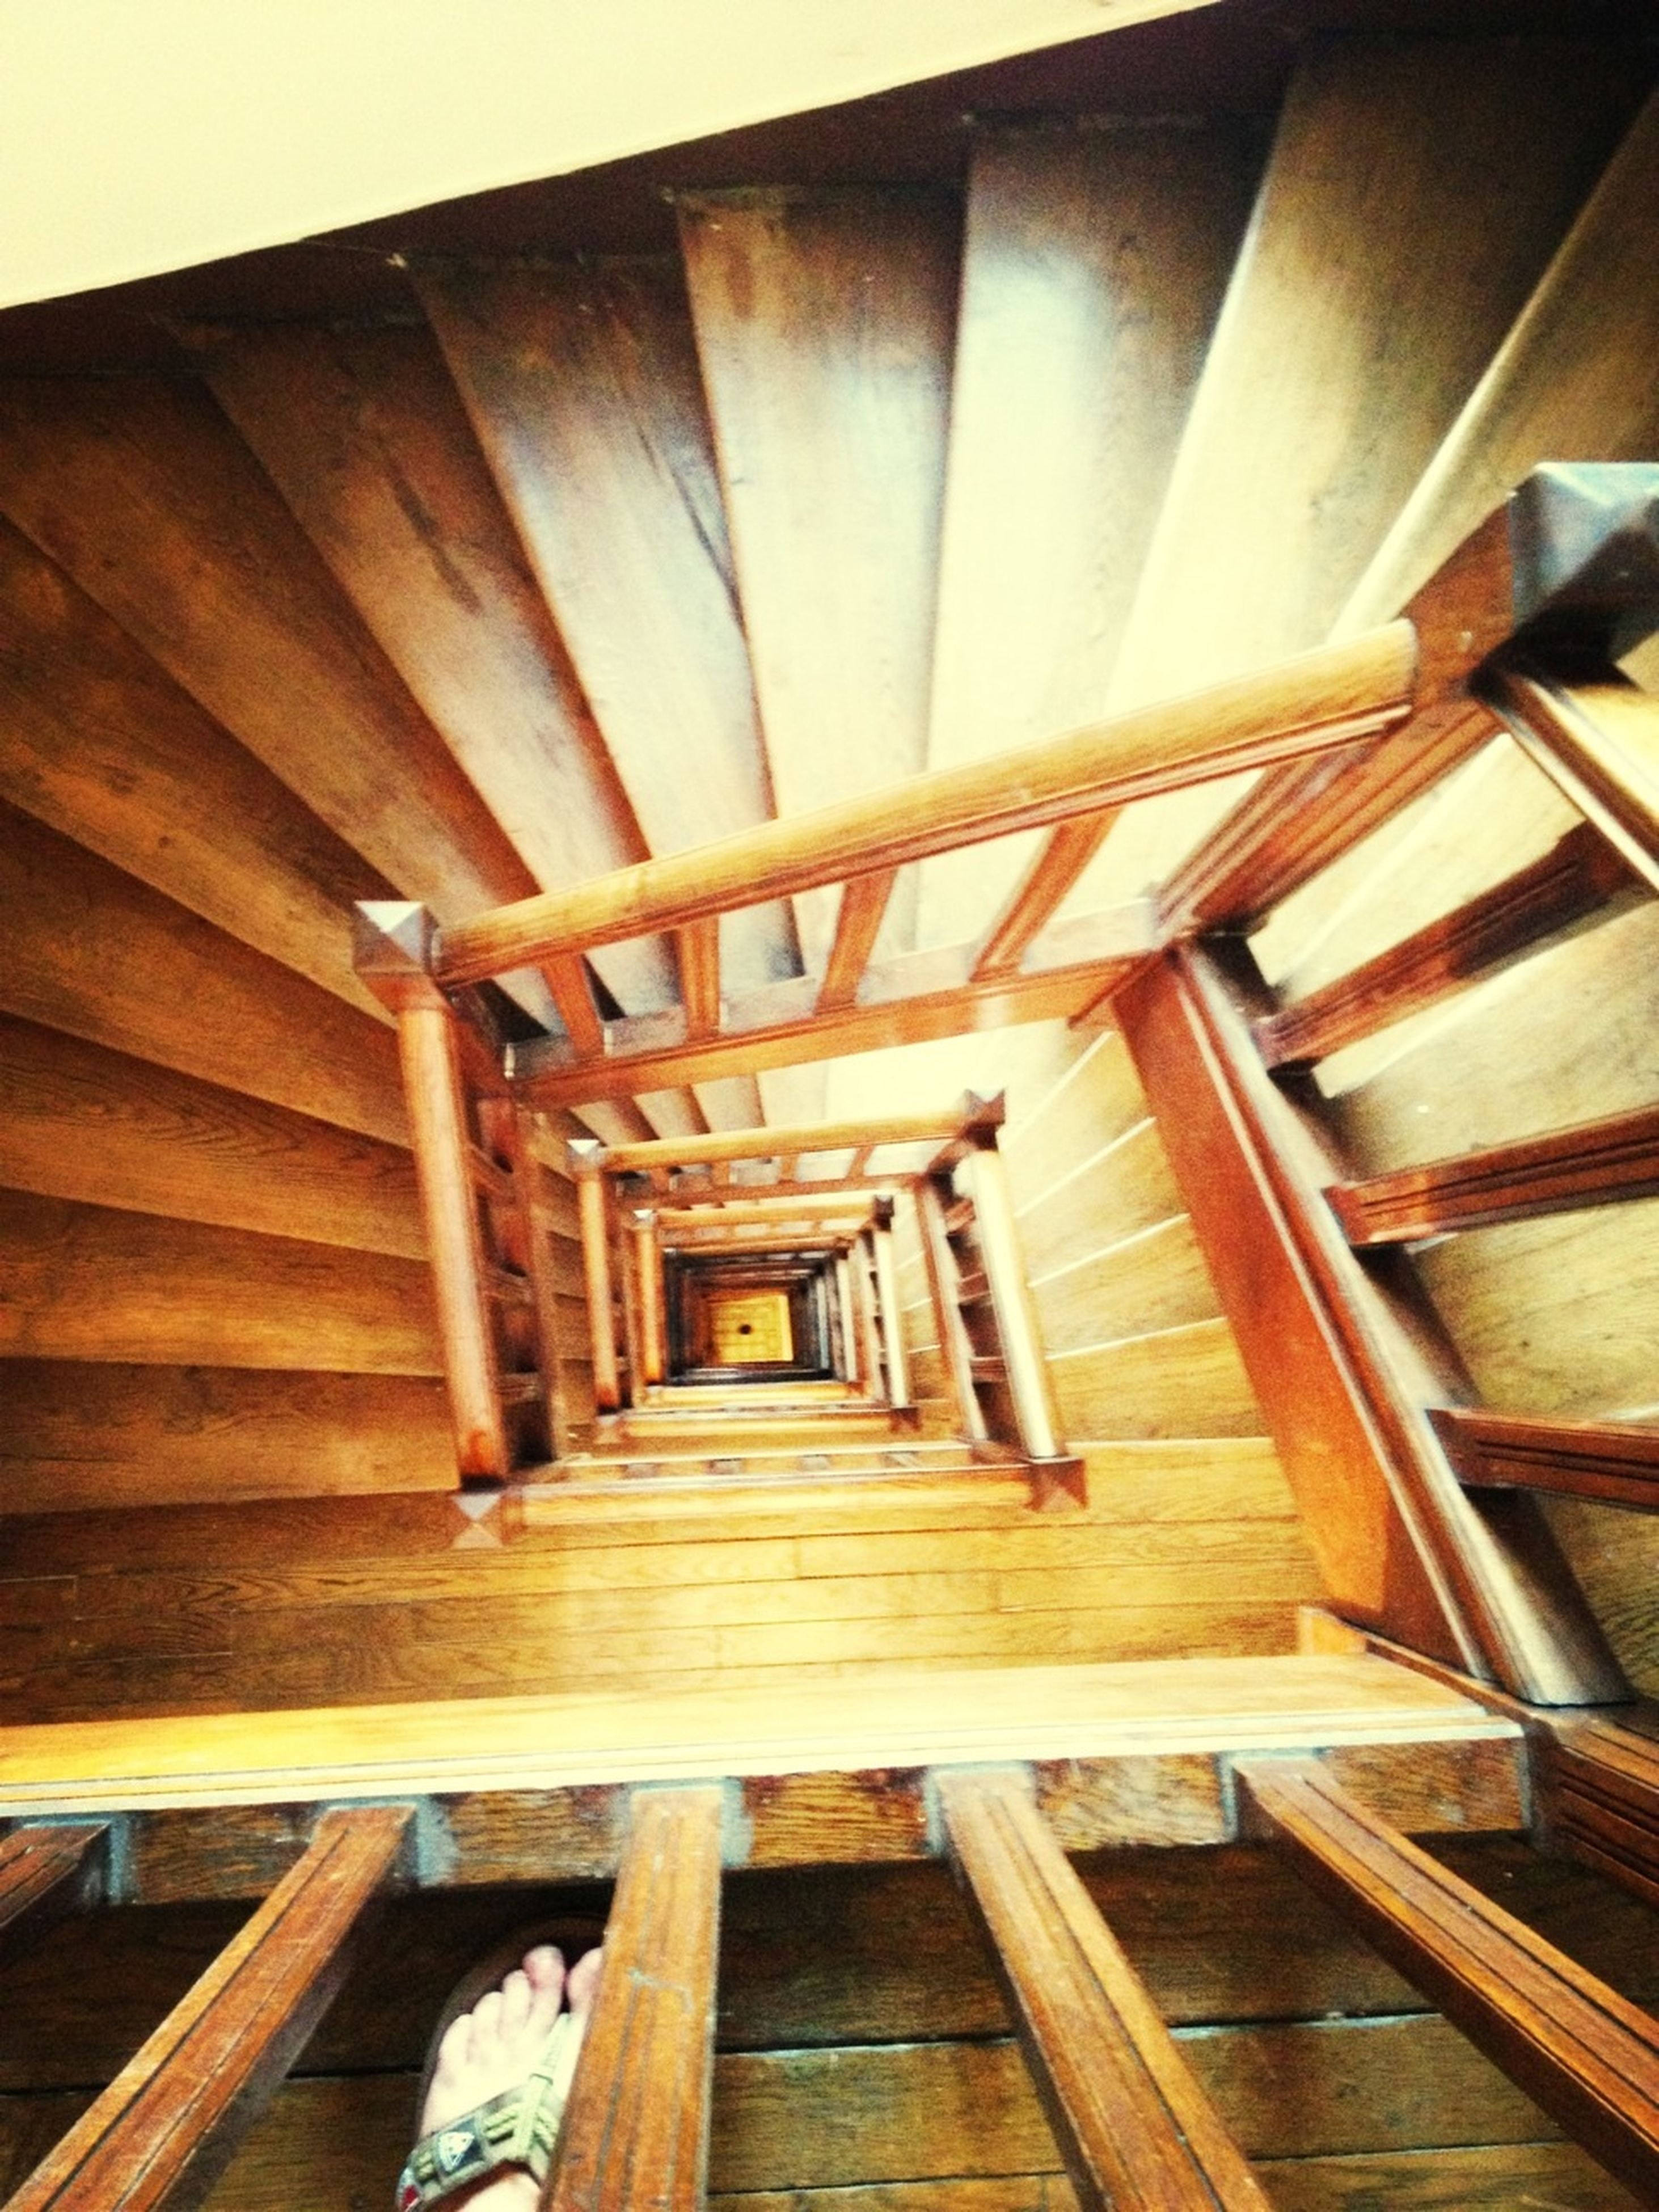 built structure, architecture, steps, wood - material, steps and staircases, staircase, railing, low angle view, indoors, ceiling, wooden, building exterior, wood, old, the way forward, no people, day, stairs, house, sunlight